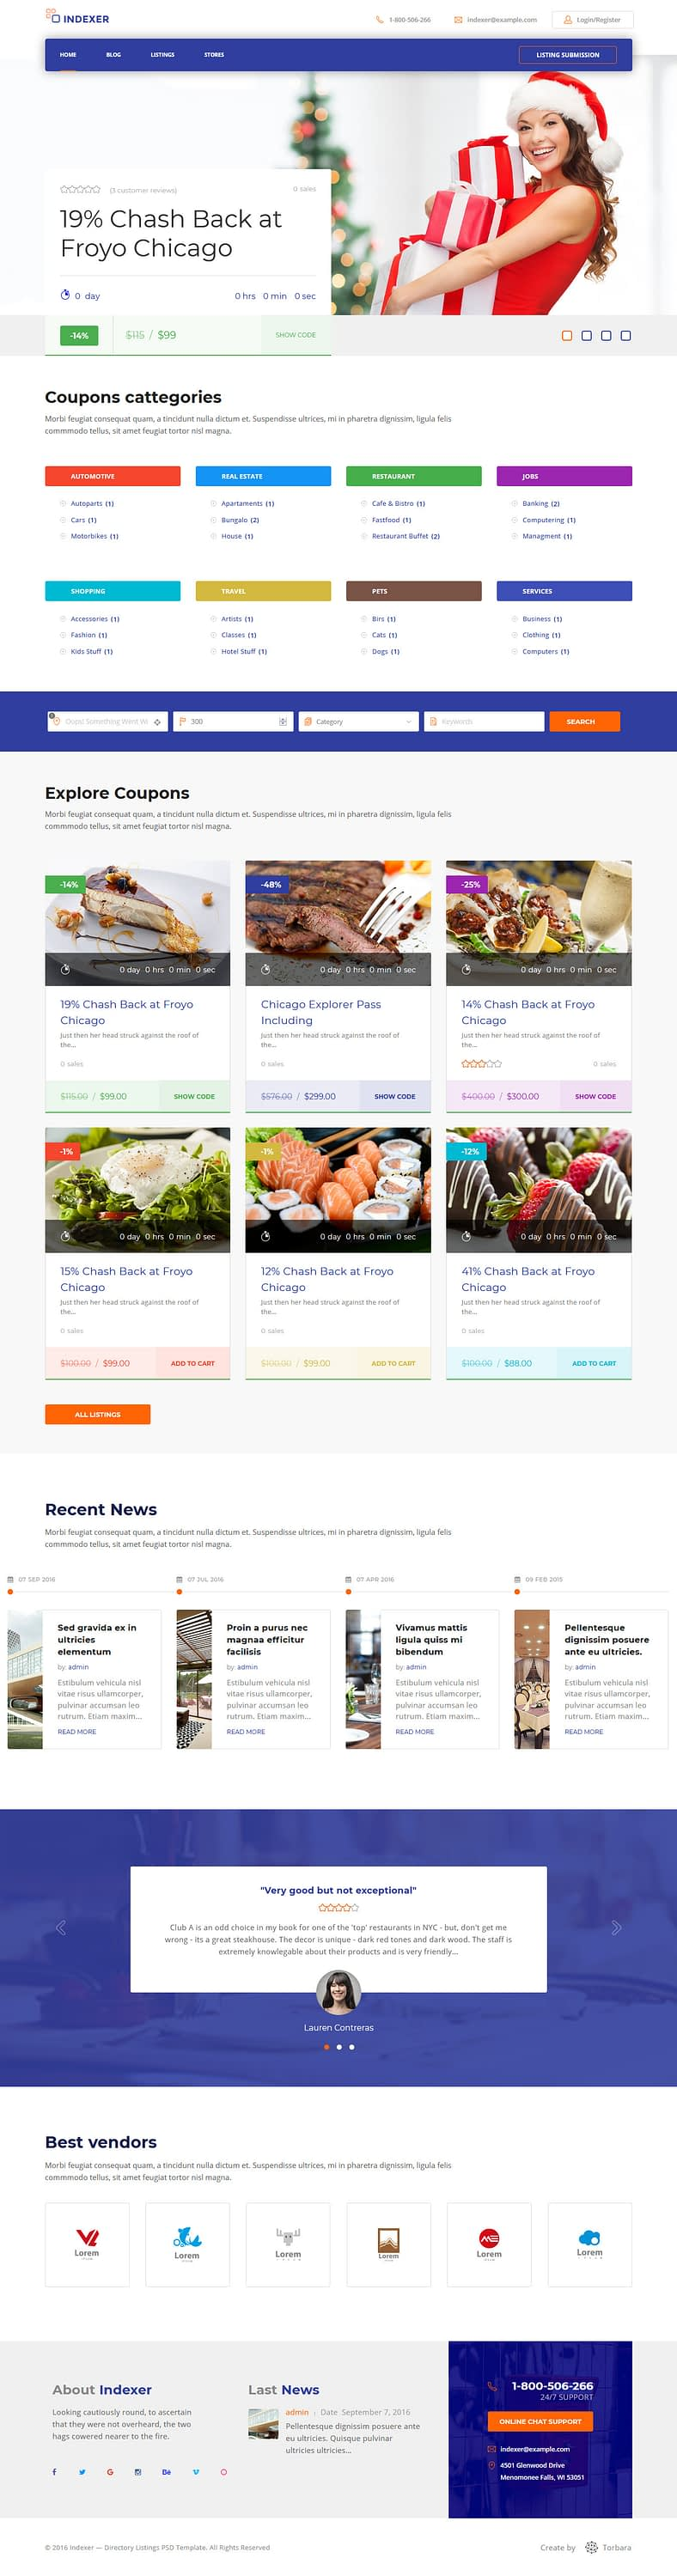 indexer best premium marketplace wordpress theme - 10+ Best Premium Marketplace WordPress Themes